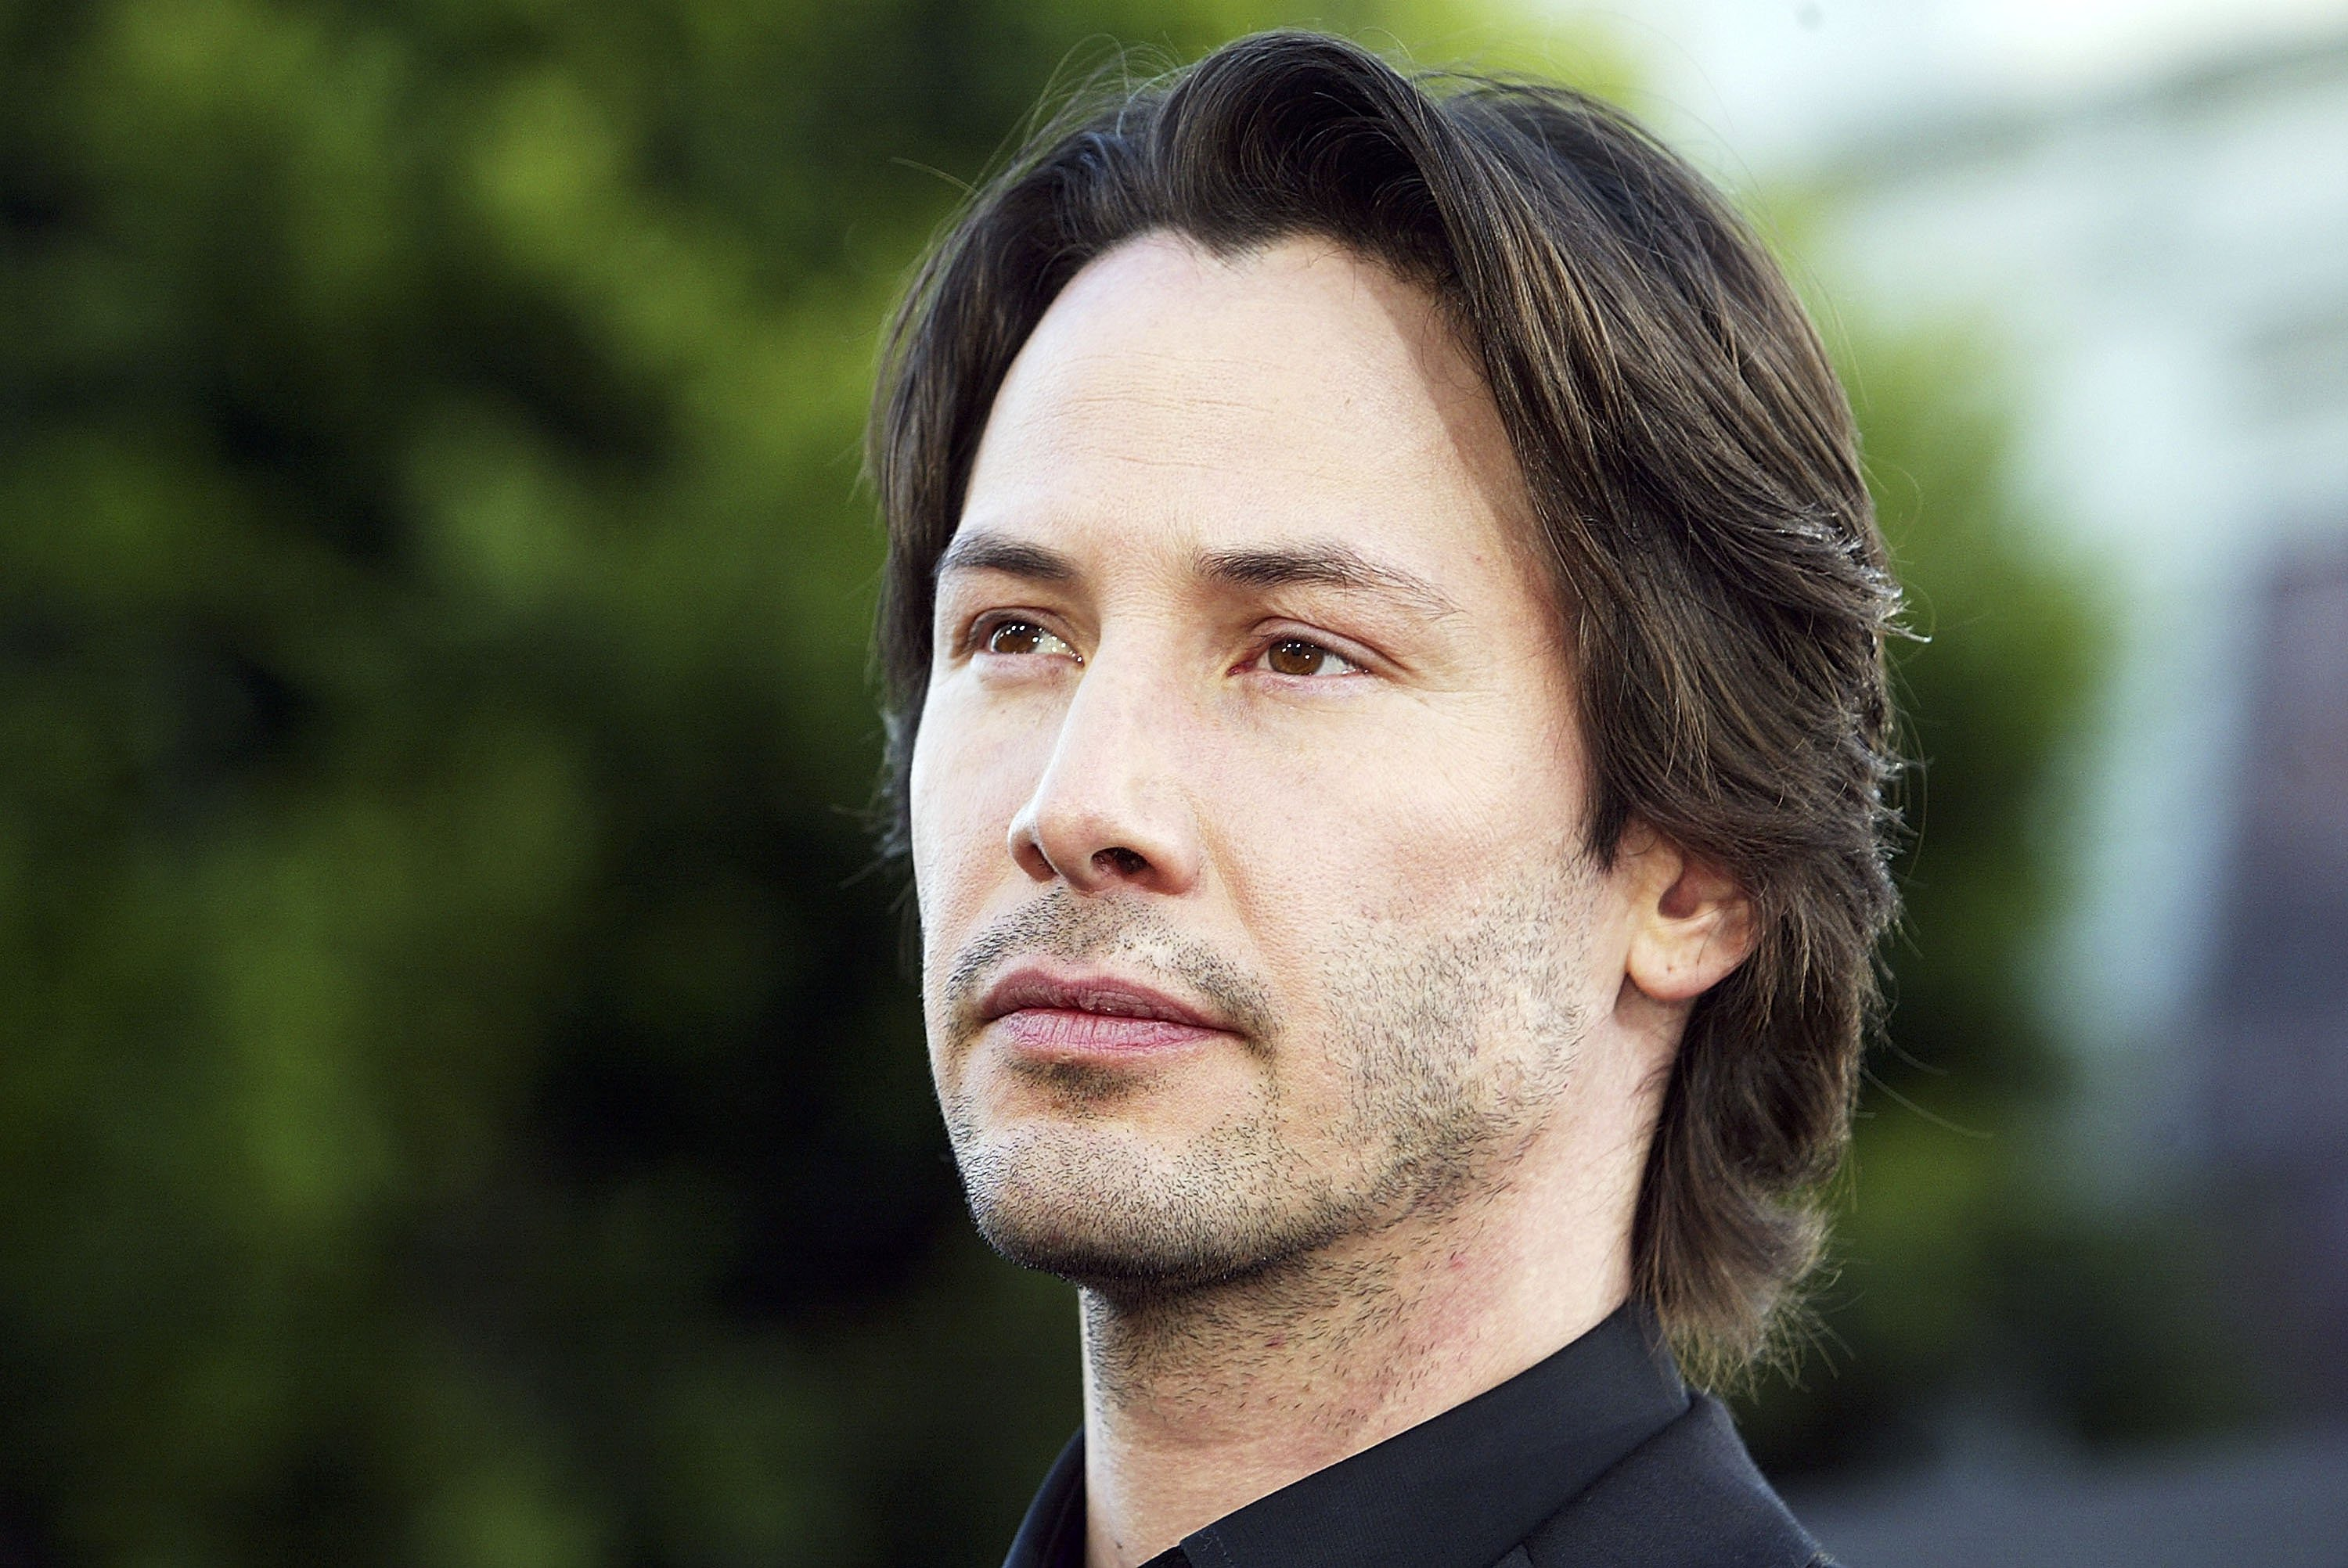 """Keanu Reeves attends """"The Matrix Reloaded"""" premiere at the Village Theater on May 7, 2003, in Los Angeles, California. 